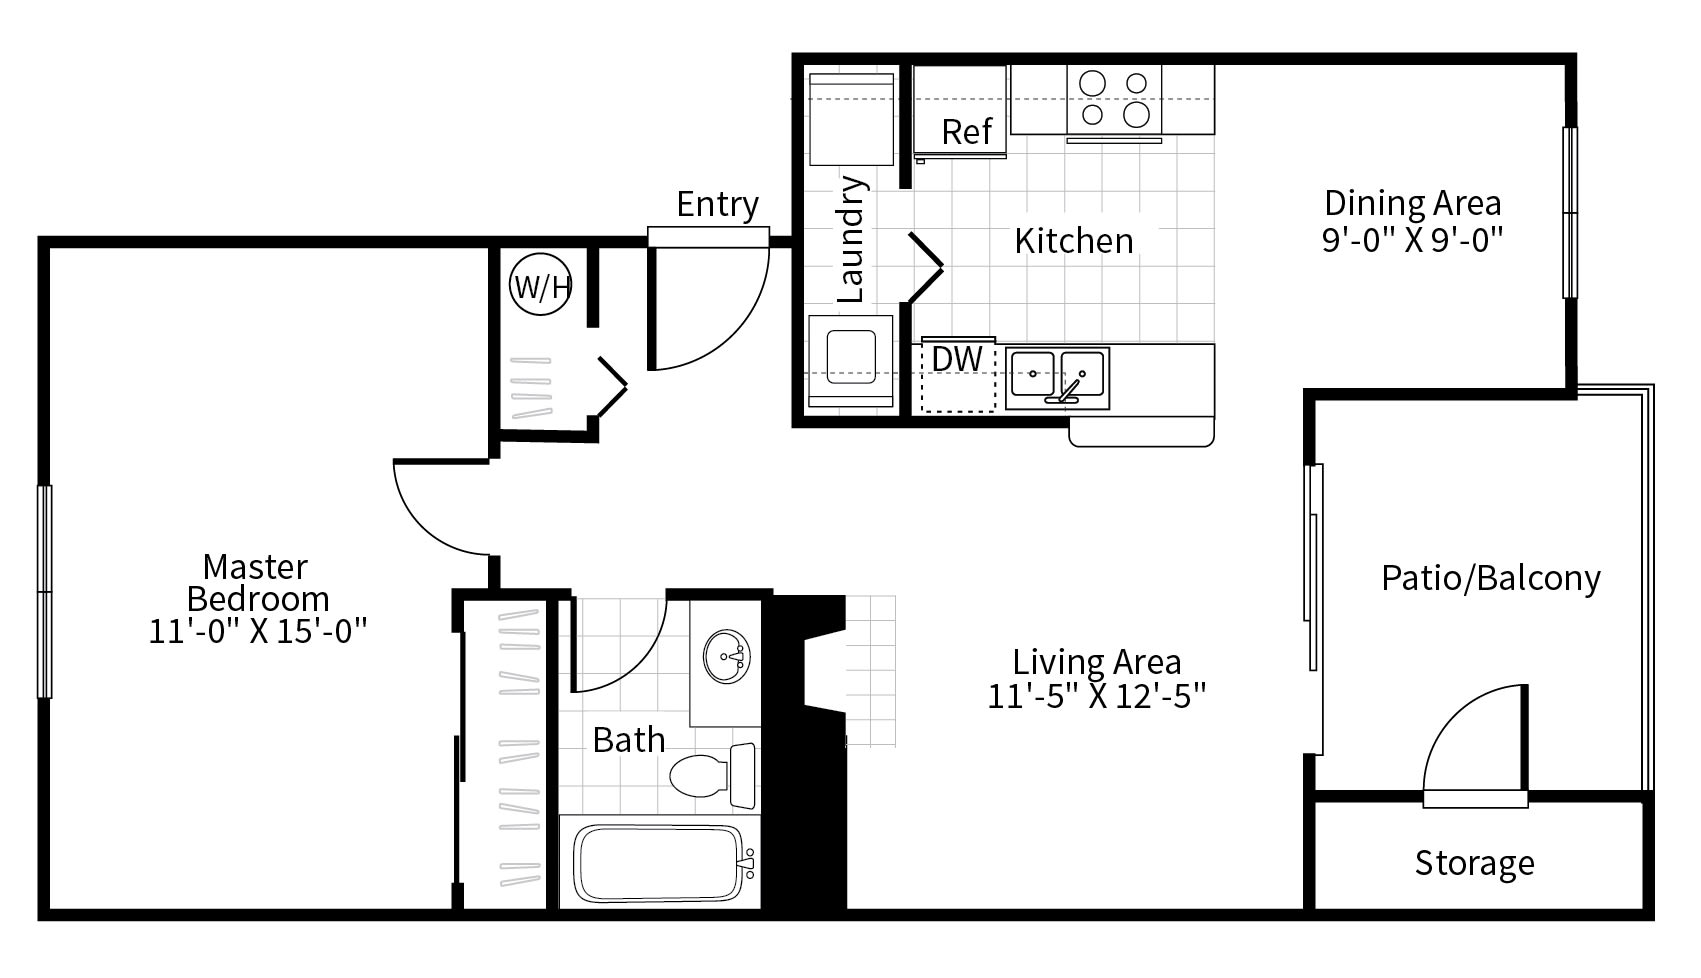 Floor Plan  1 bedroom 1 bathroom floor plan at Grammercy apartments in Renton, Washington., opens a dialog